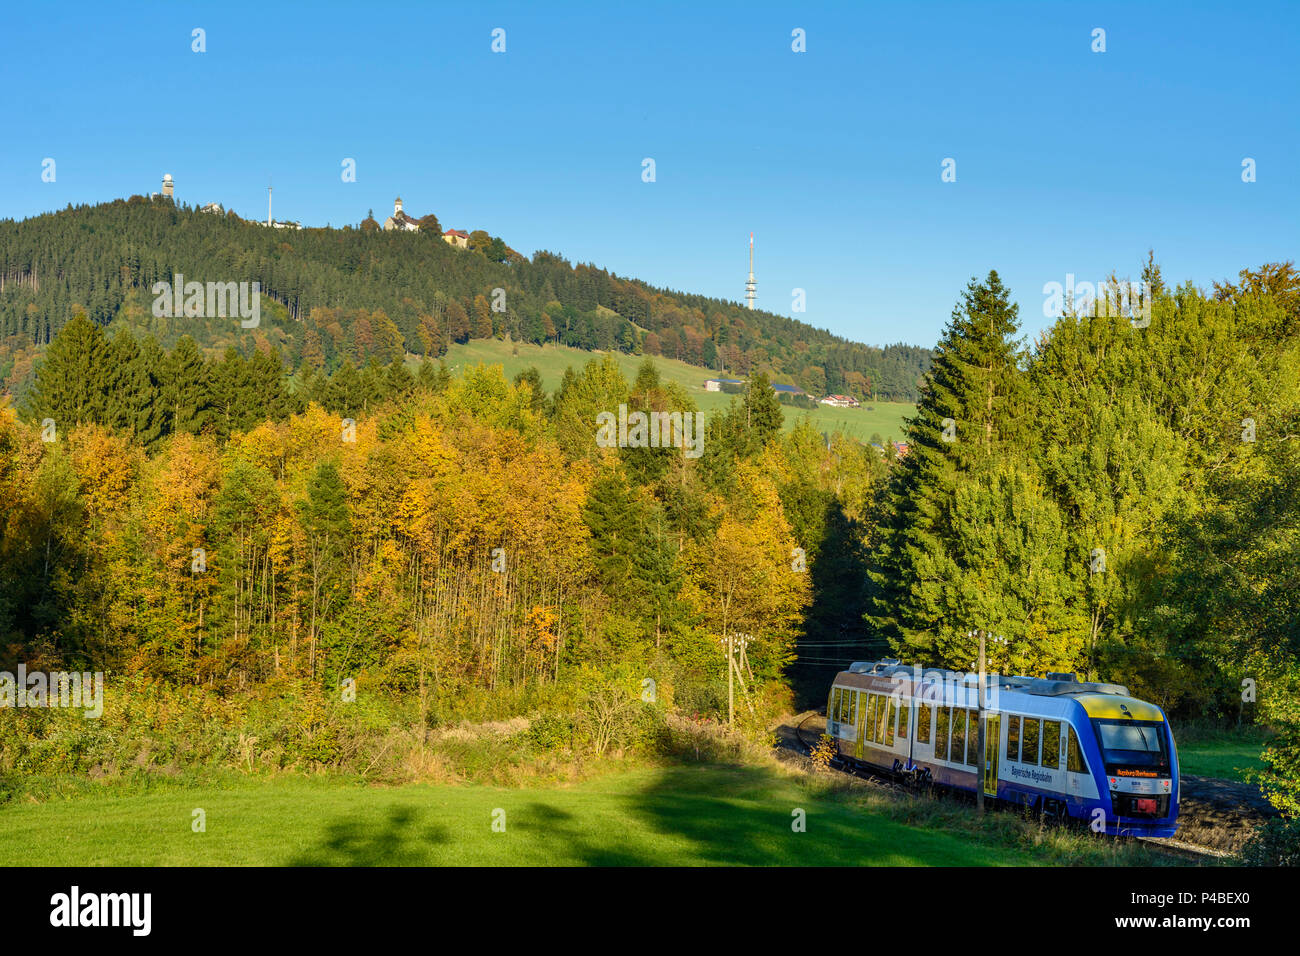 Hohenpeißenberg, mountain Hohenpeißenberg, local train of Bayerische Regiobahn (BRB), Upper Bavaria, Bavaria, Germany - Stock Image